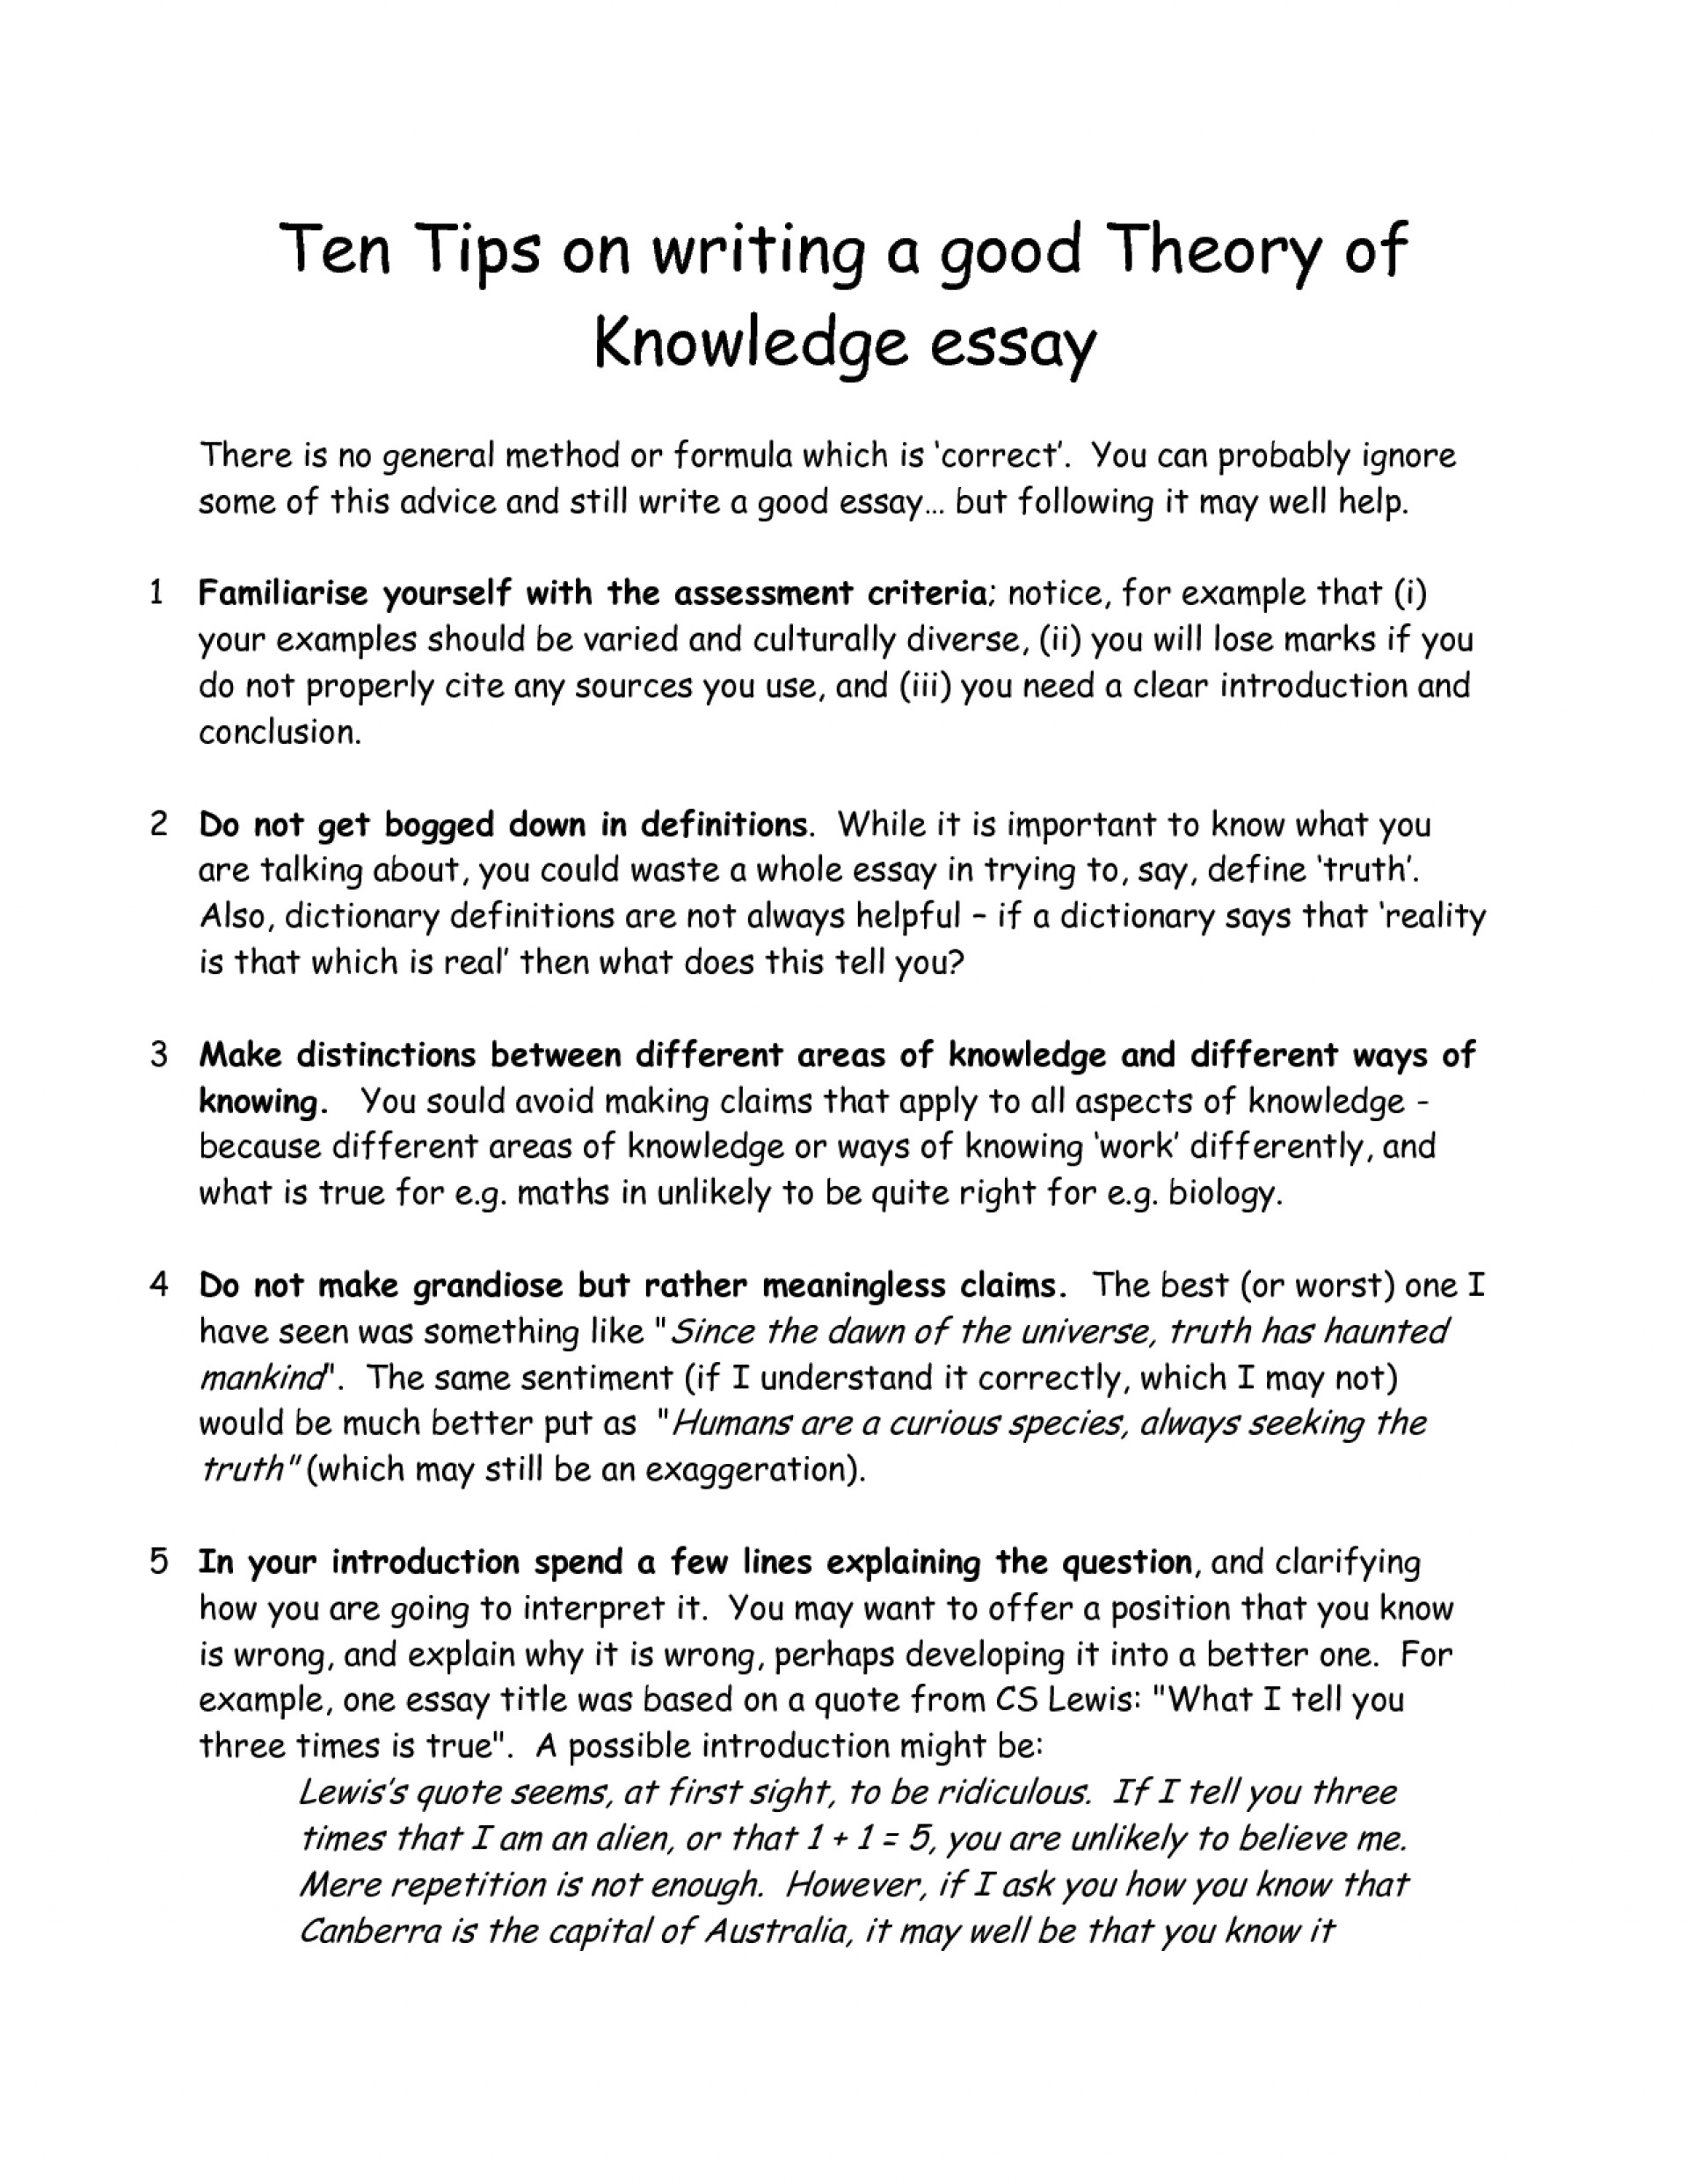 003 Qqllg0v8ct How To Write An Essay About Yourself Best In Spanish English Third Person 1920